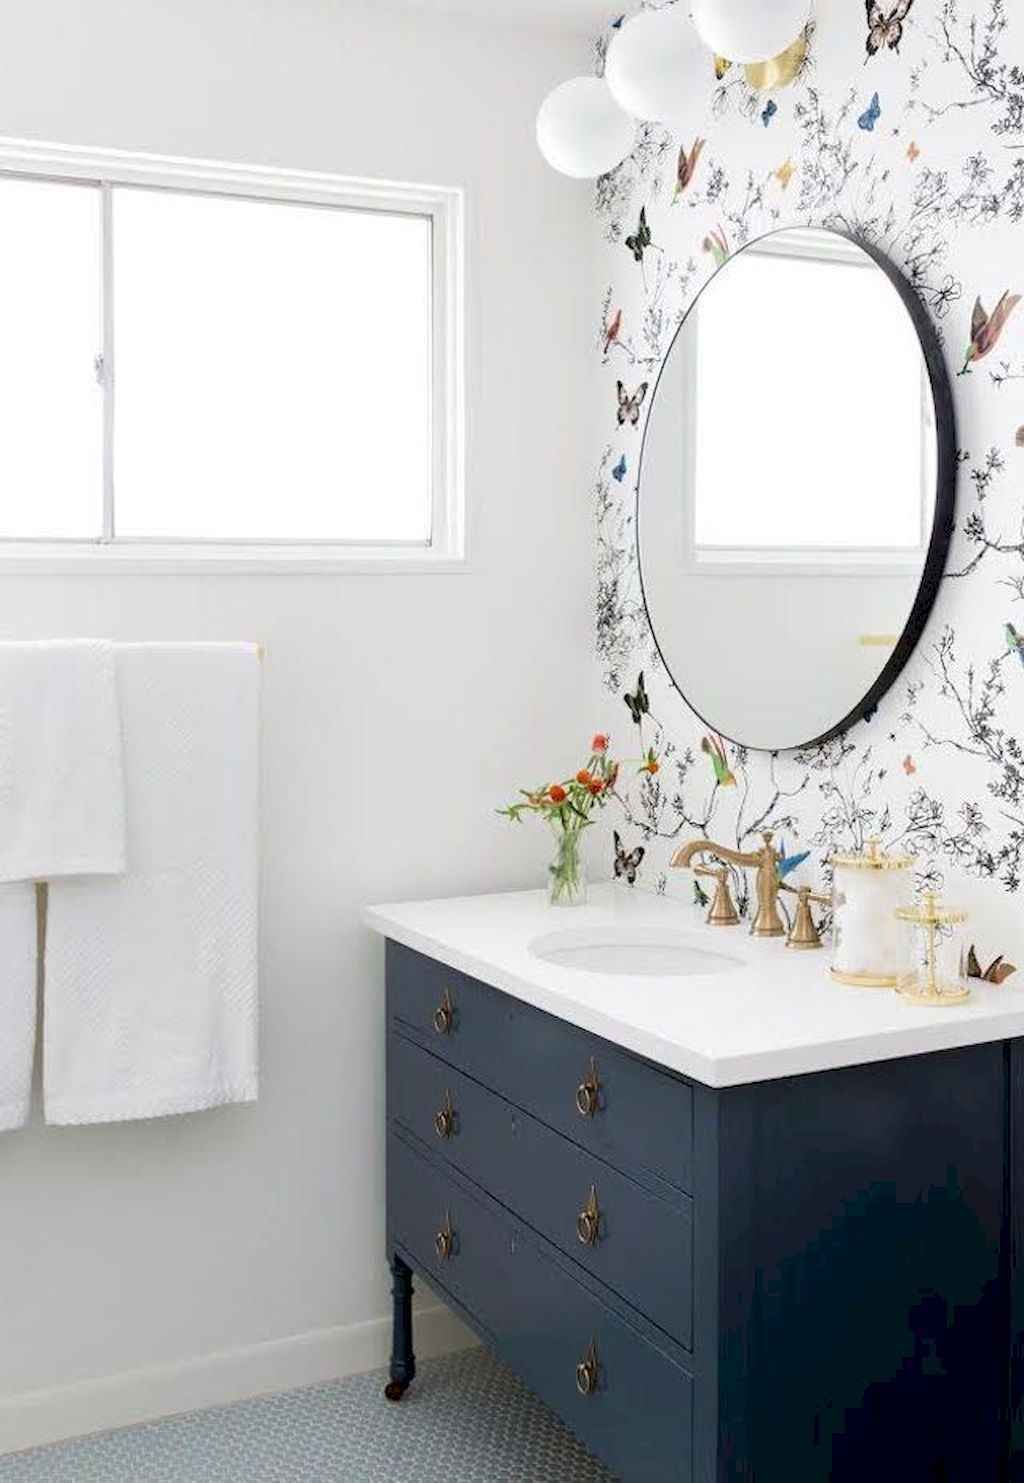 01 guest bathroom makeover decor ideas on a budget in 2020 ...